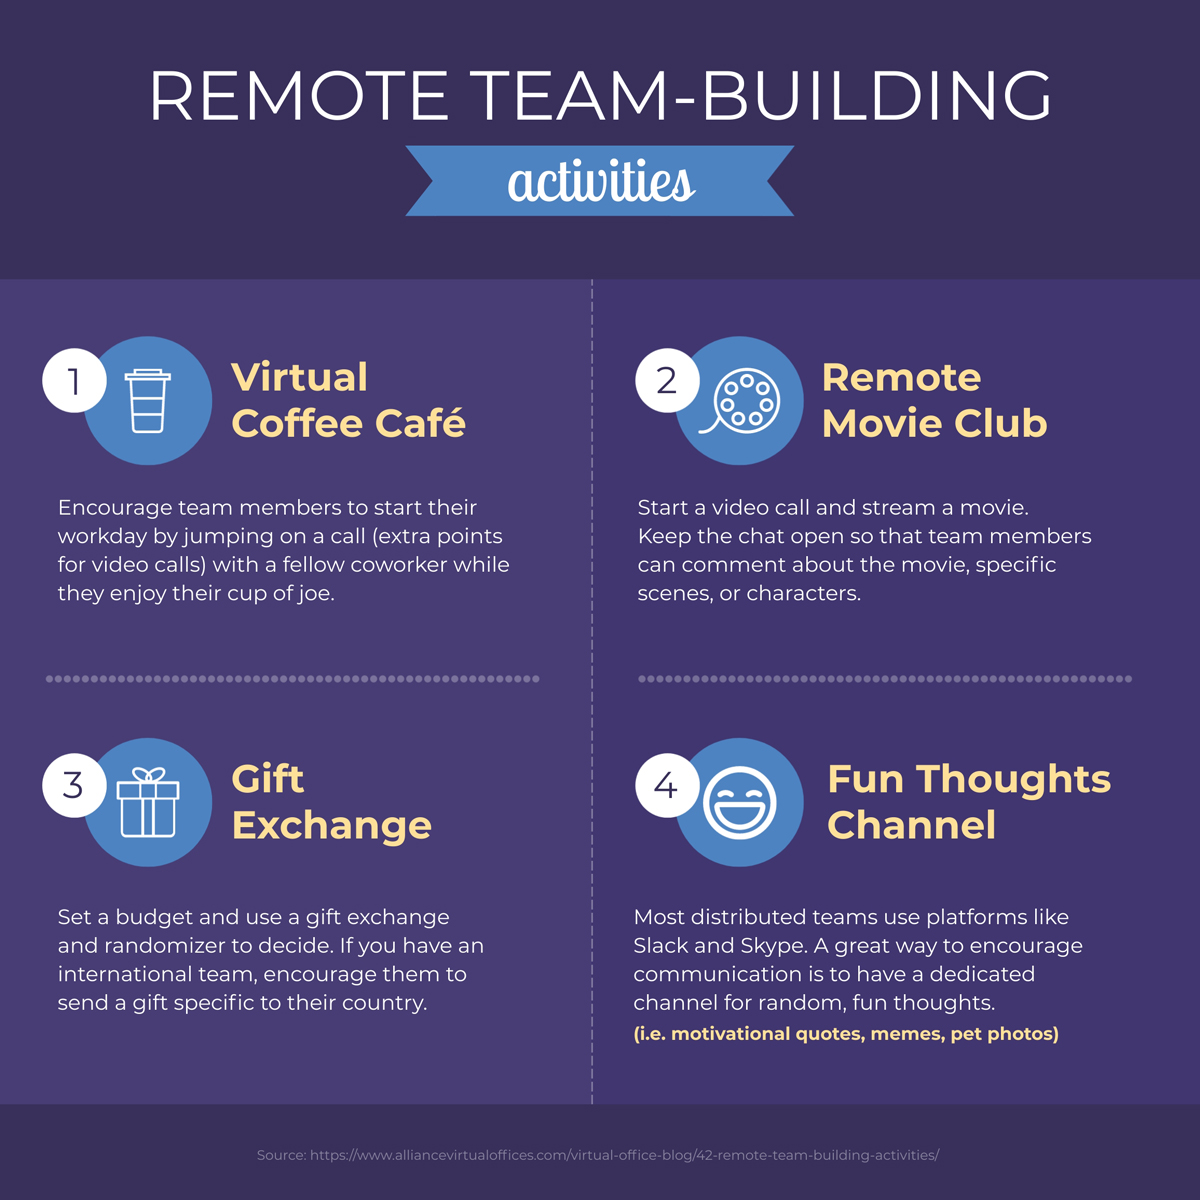 An infographic showcasing remote team-building activities.